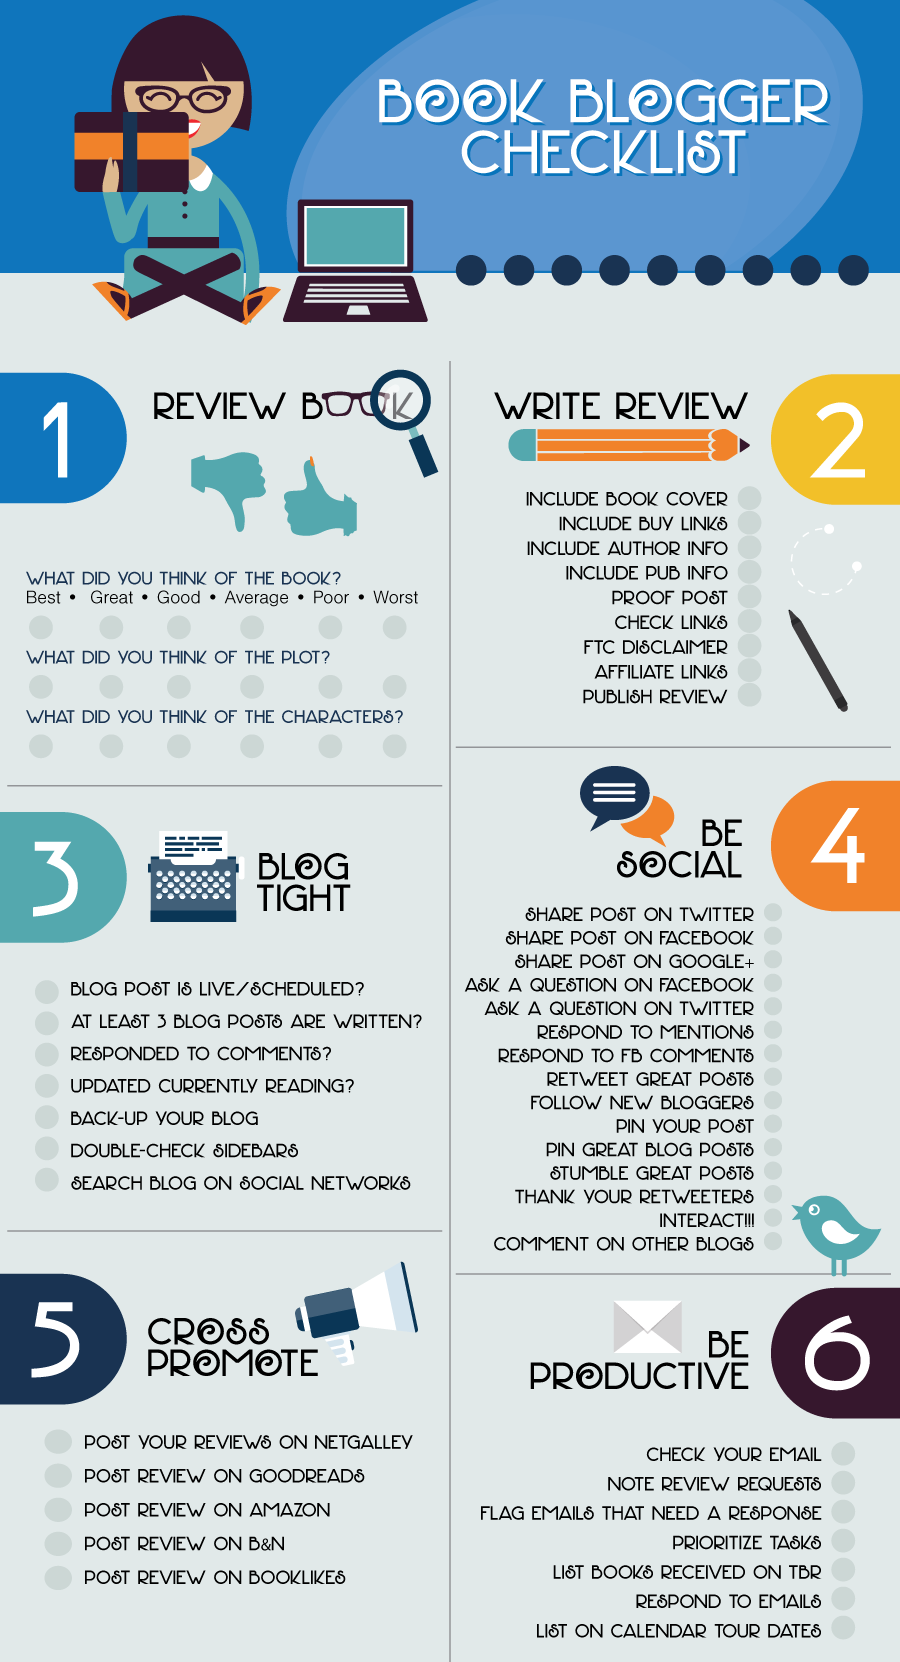 Blogging_Checklist_infographic1 (1) lg